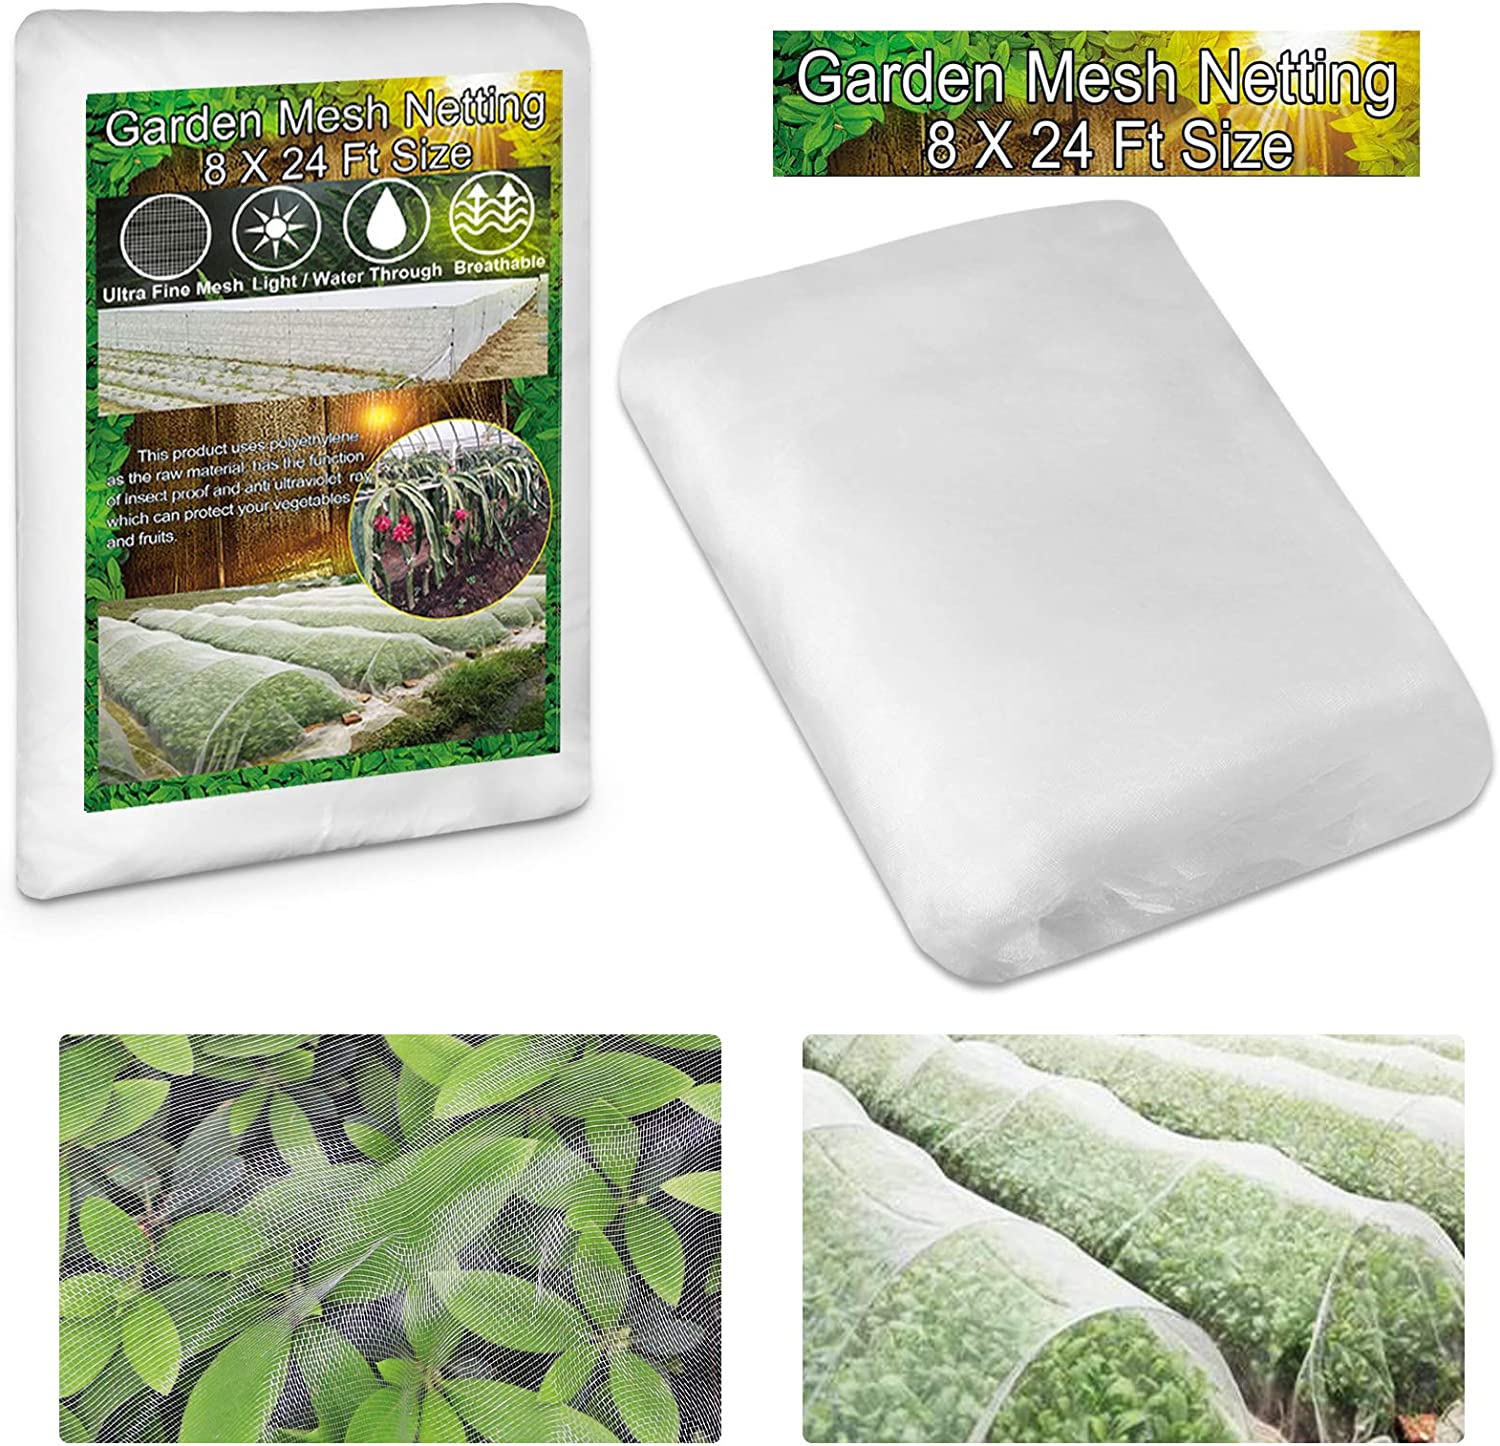 KY-YPFW 8x24 Ft Garden Netting Plant Covers - 0.032